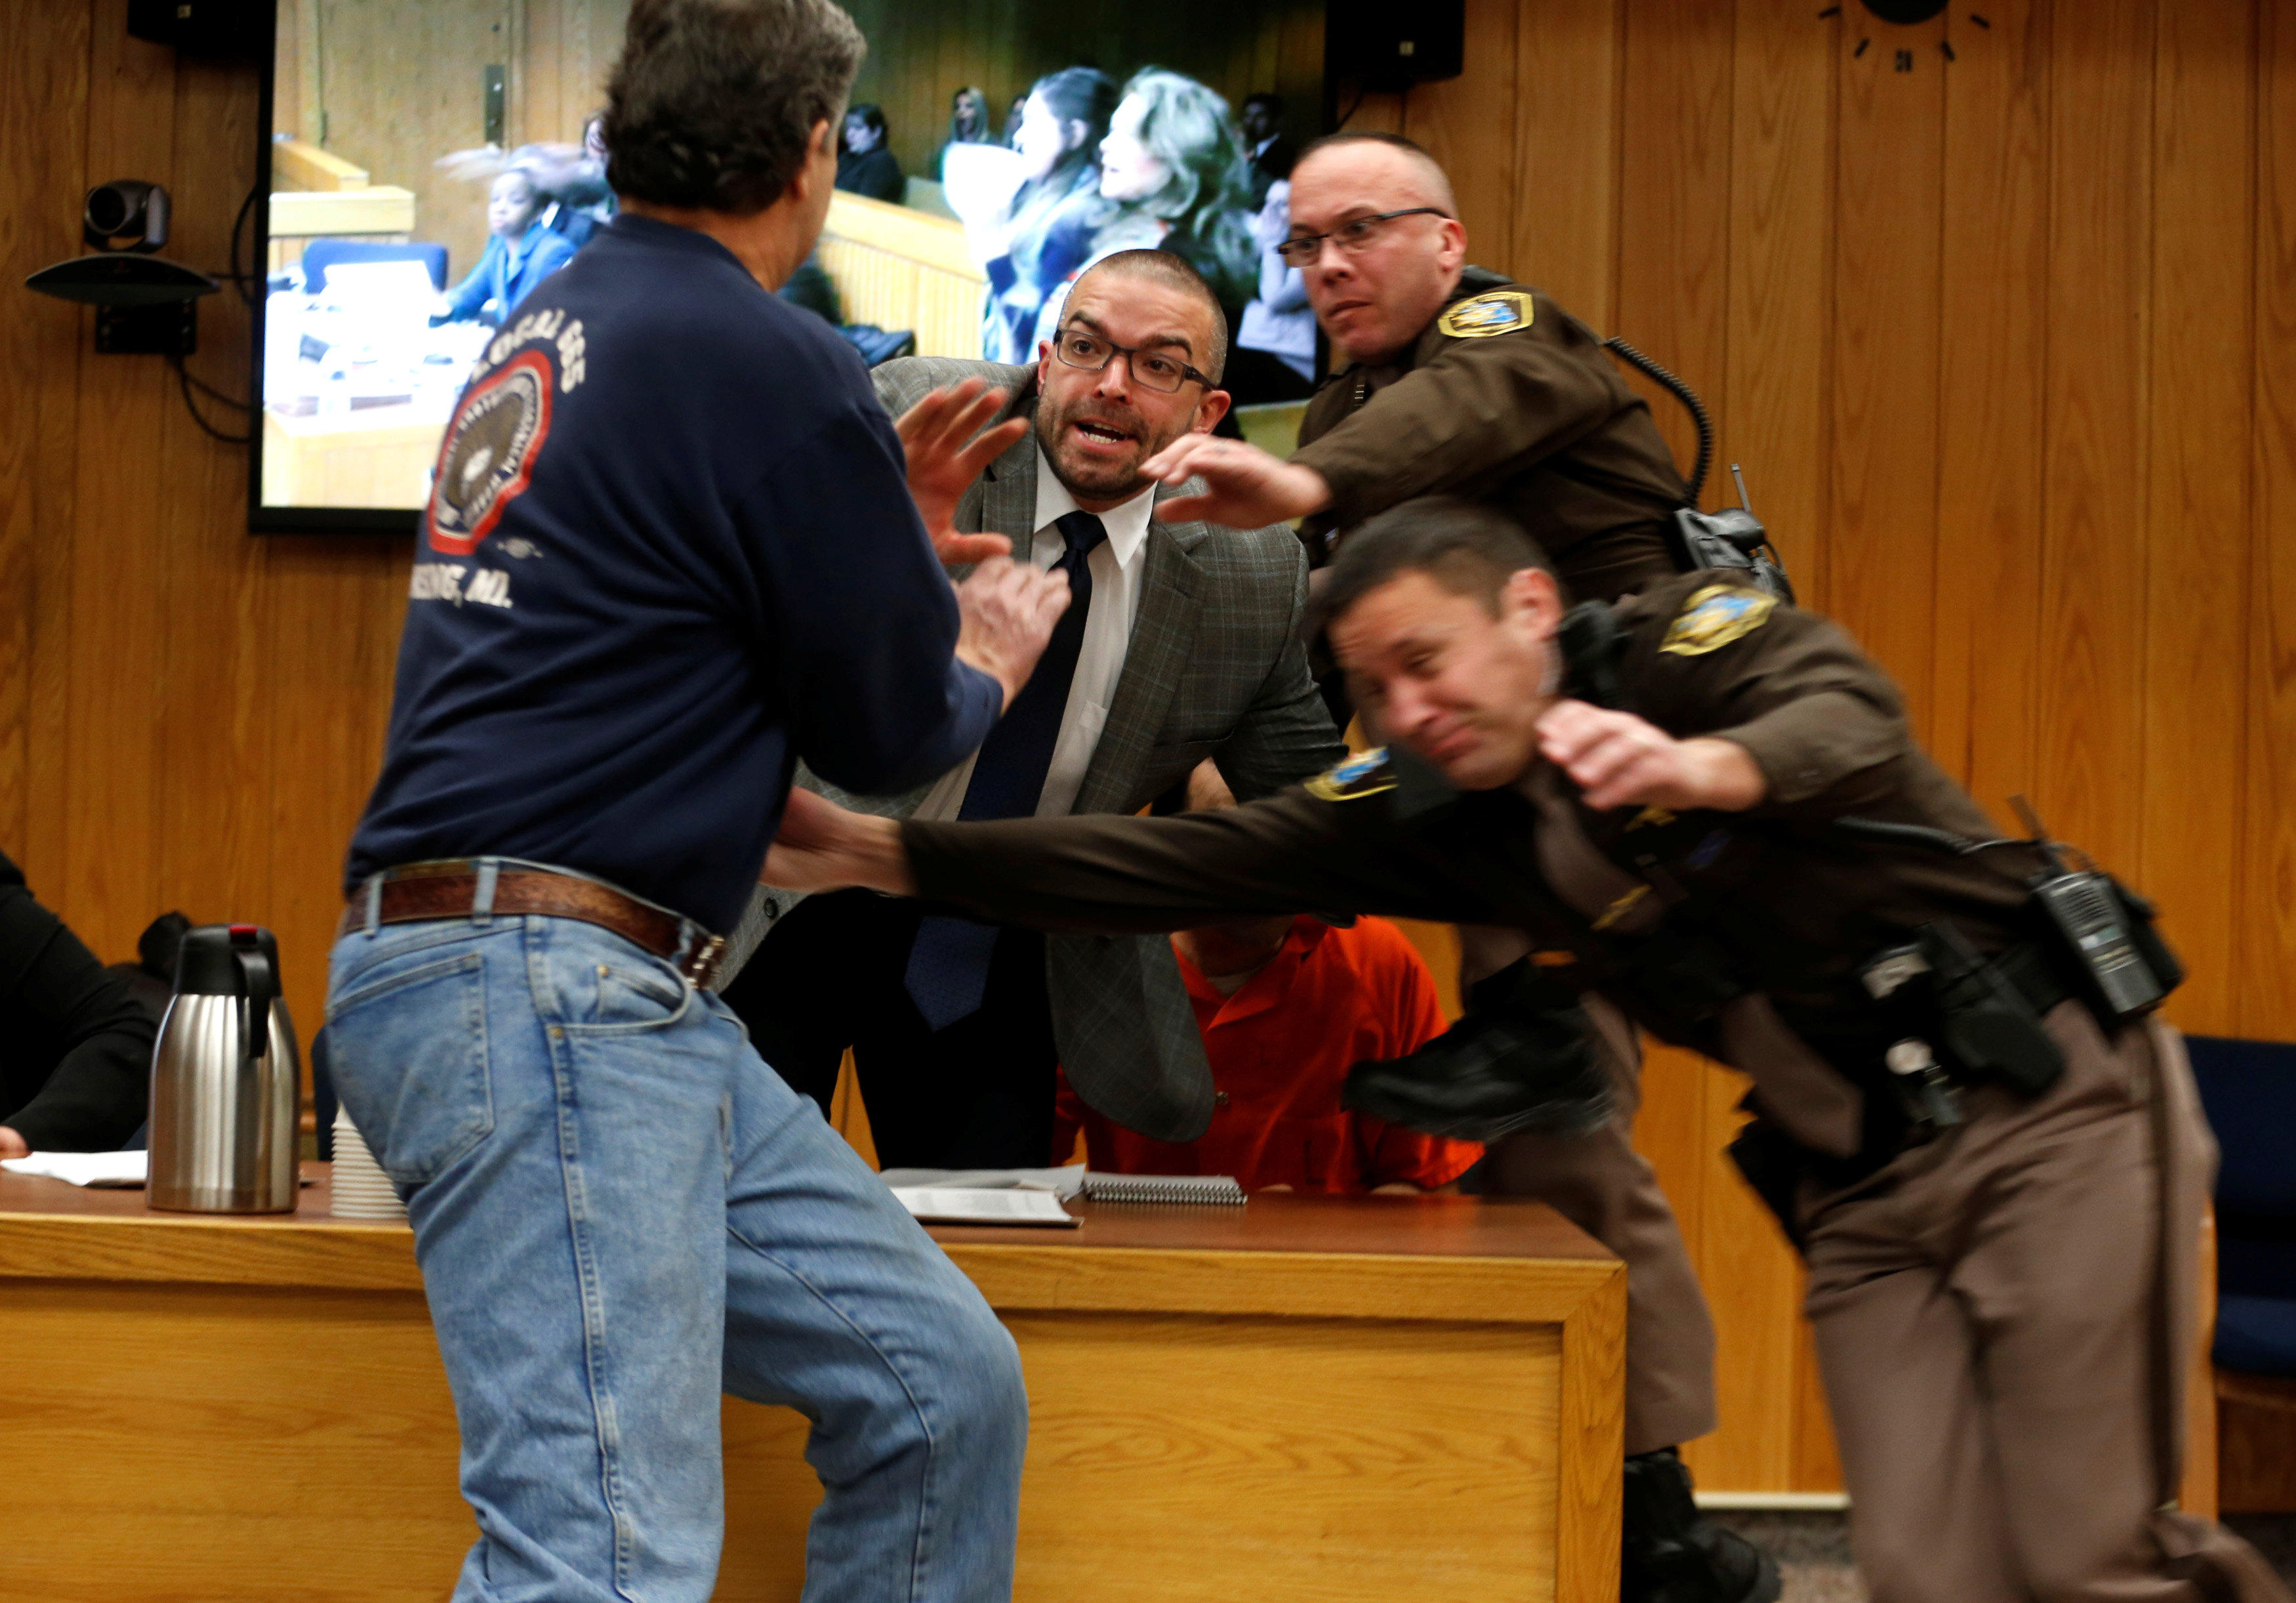 Larry Nassar Victims Dad Tries To Attack Disgraced Doctor In Court